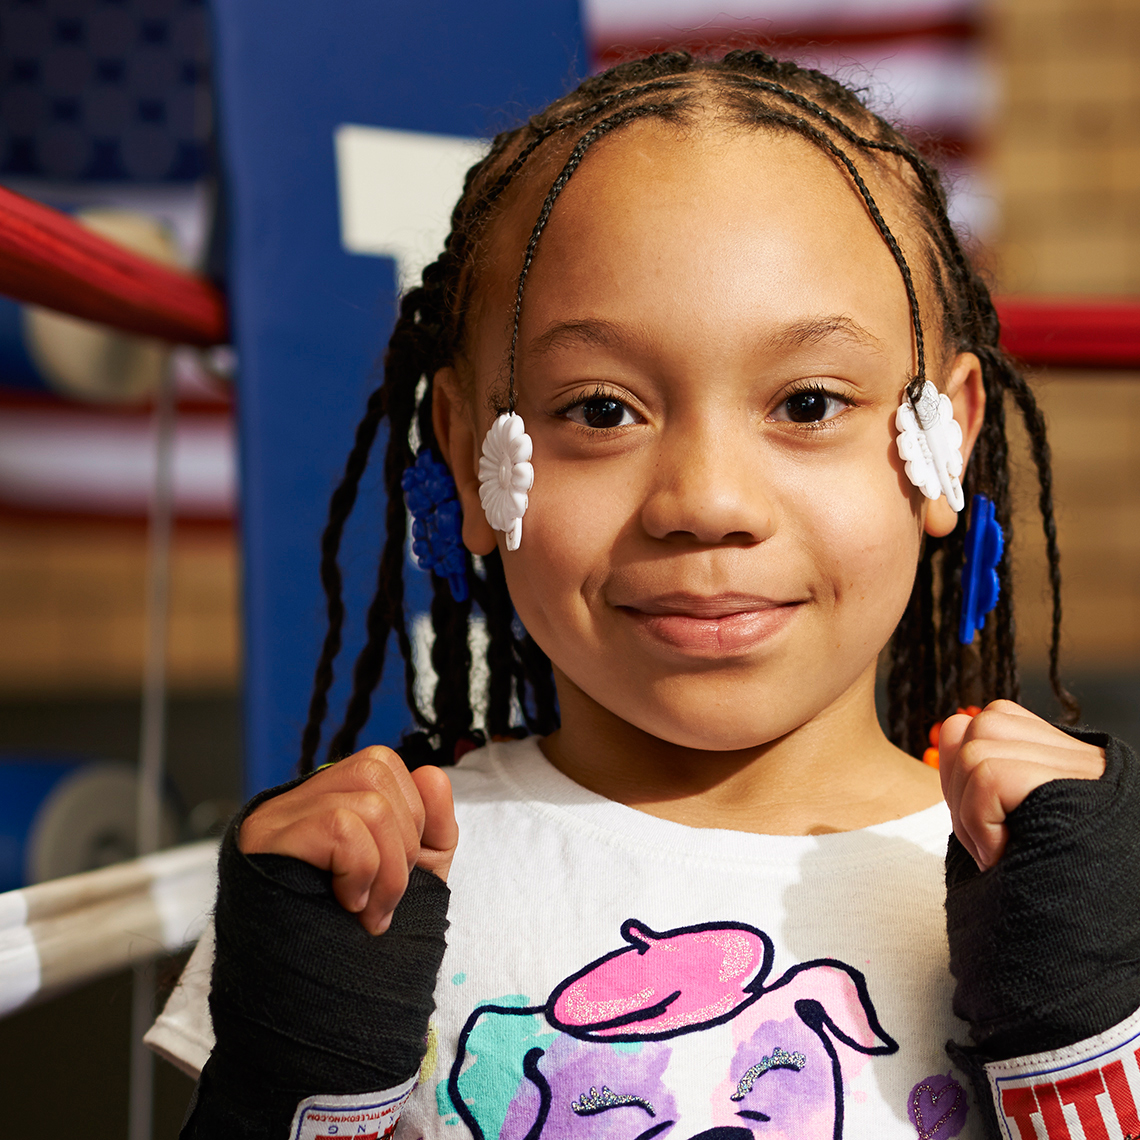 Sweet Little Girl Boxer with Beads and Braids